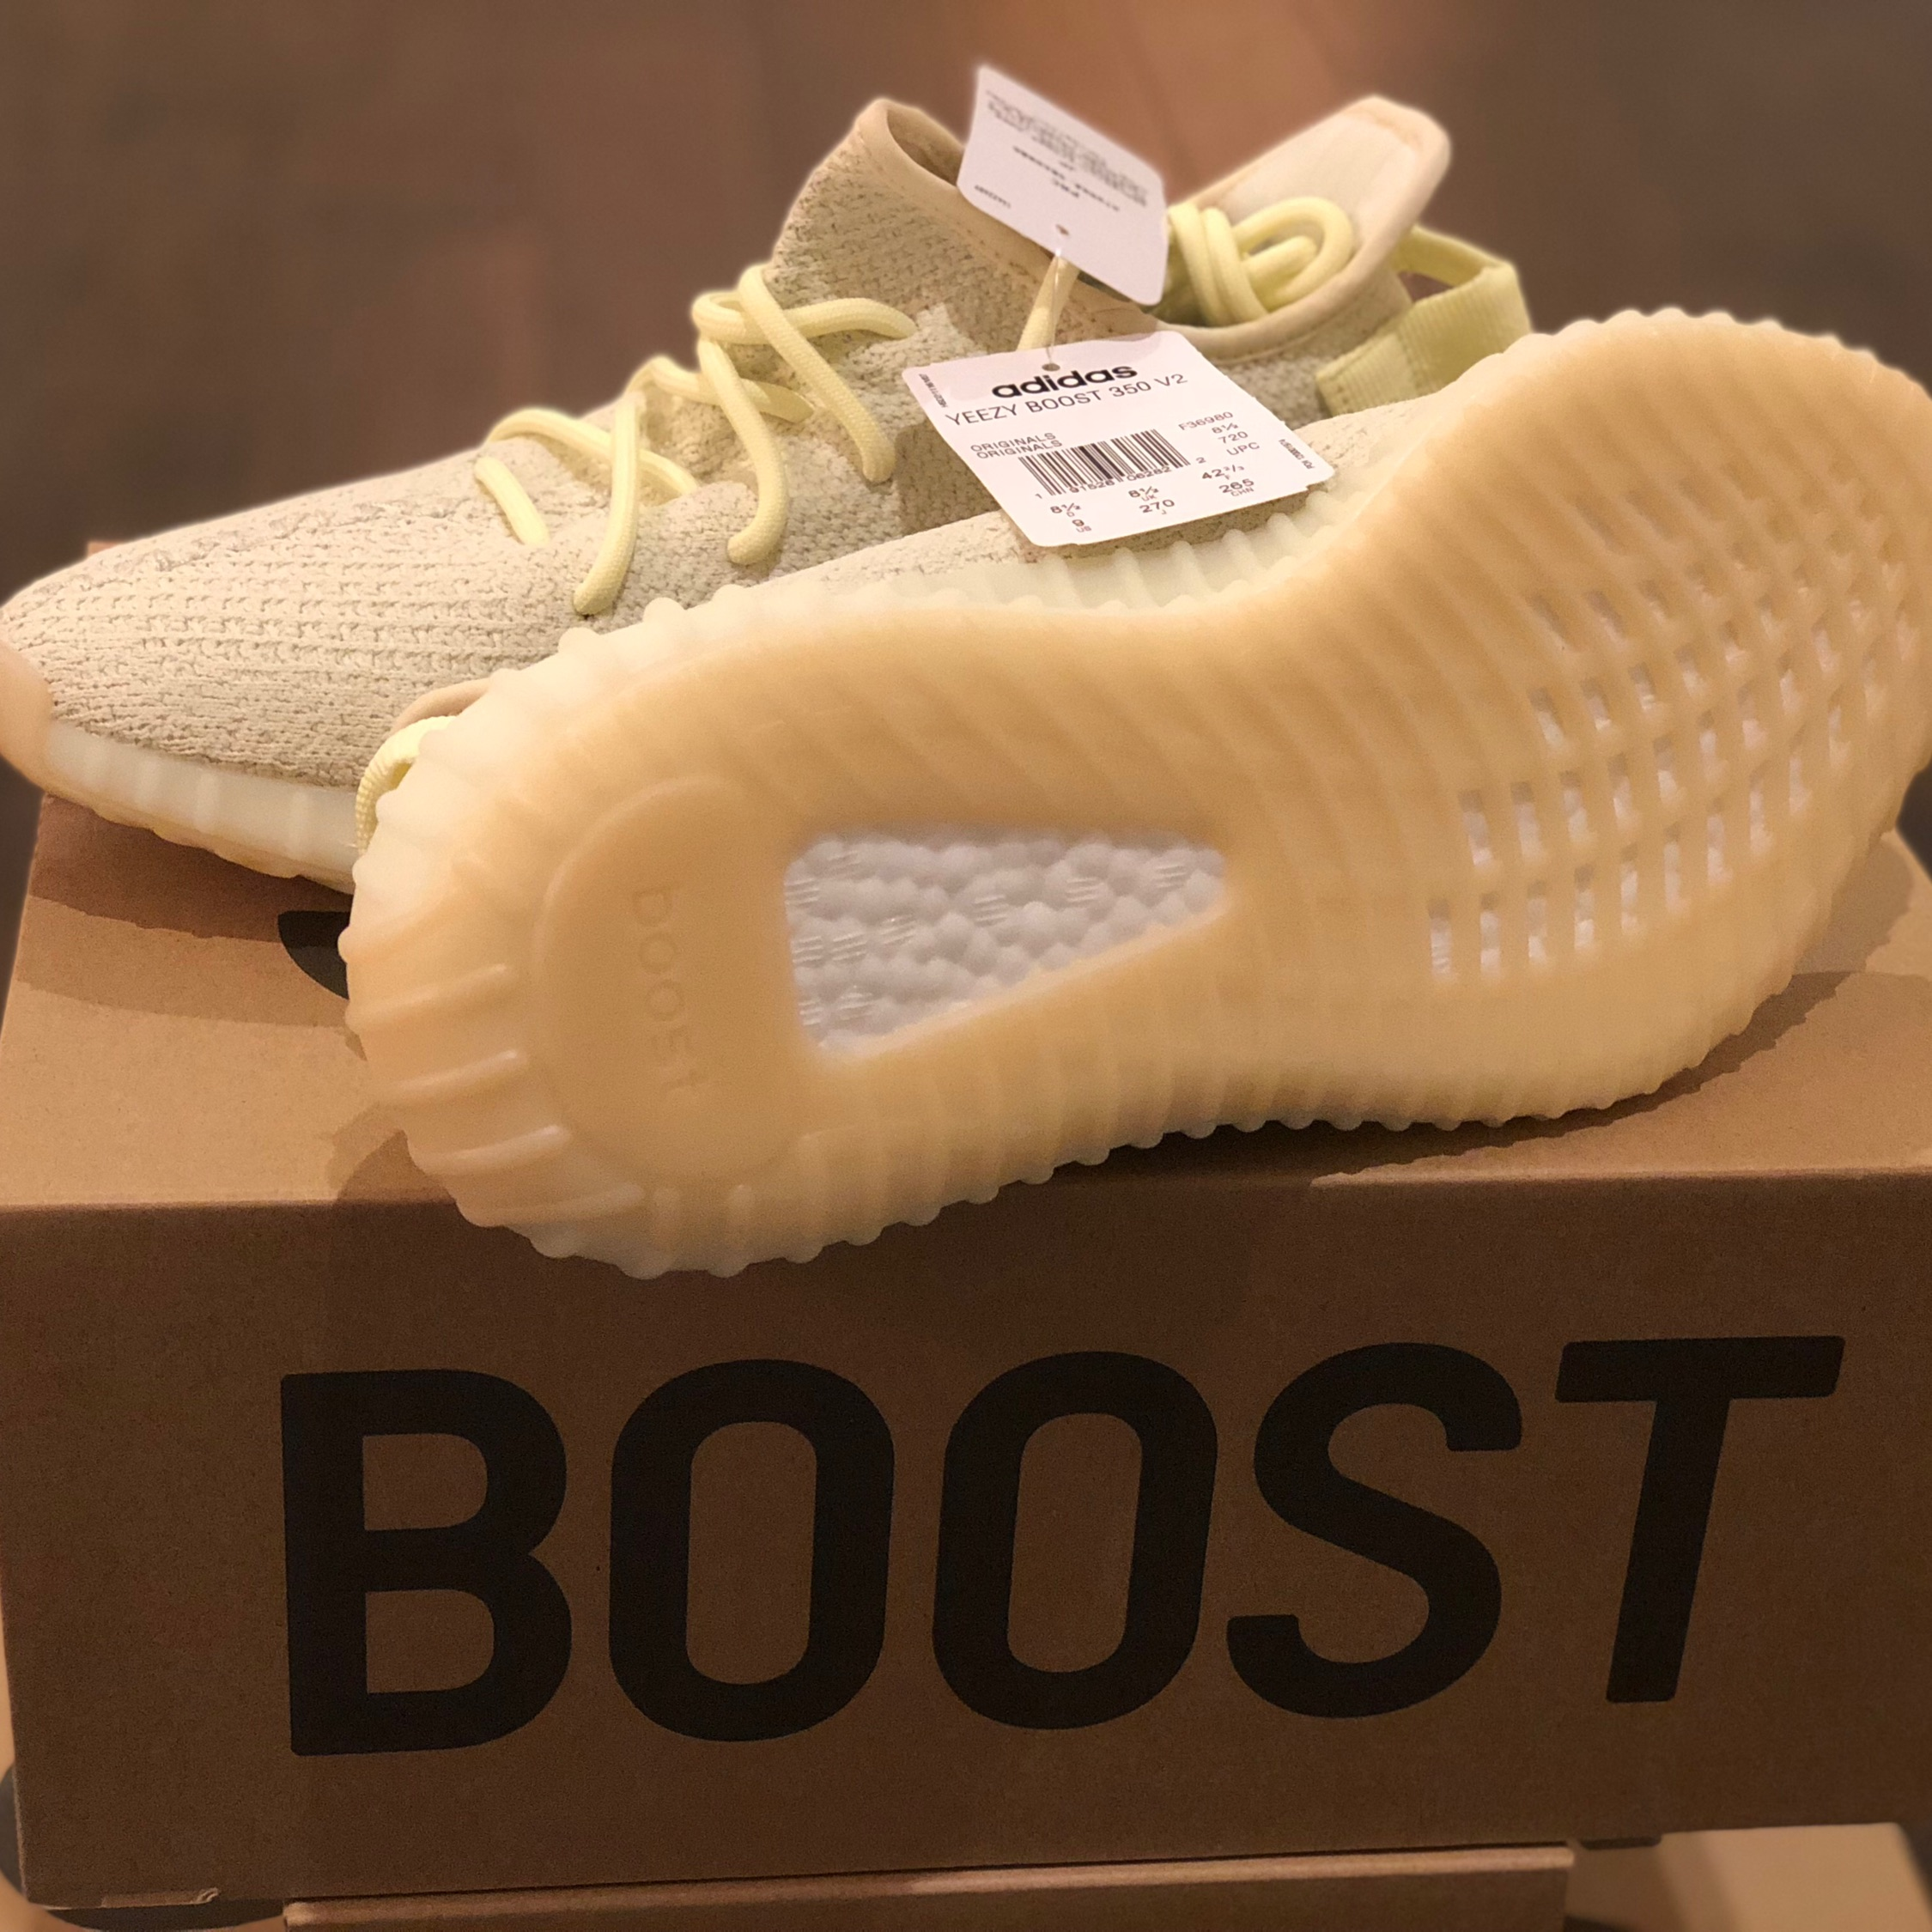 Yeezy Boost 350 V2 Butter - Size 9